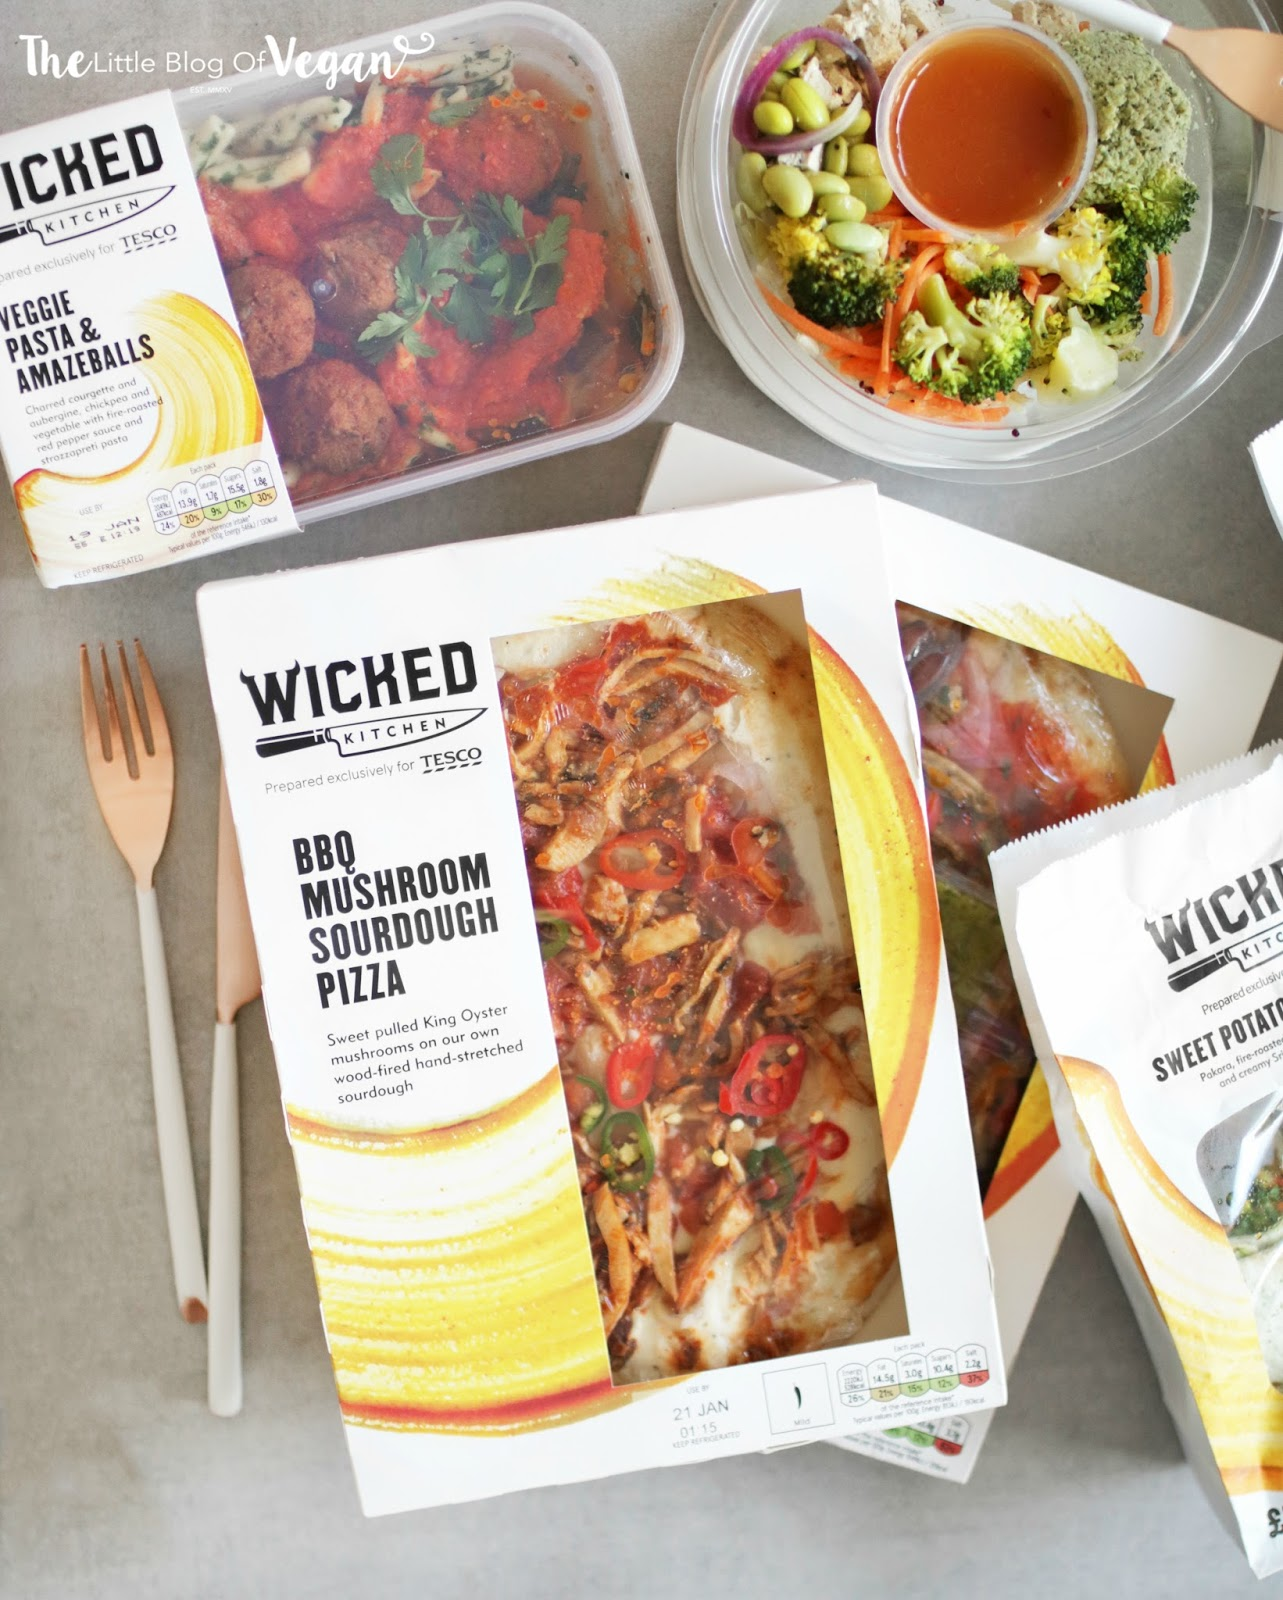 he has partnered with tesco to launch this array of flavourful ready meals - Wicked Kitchen